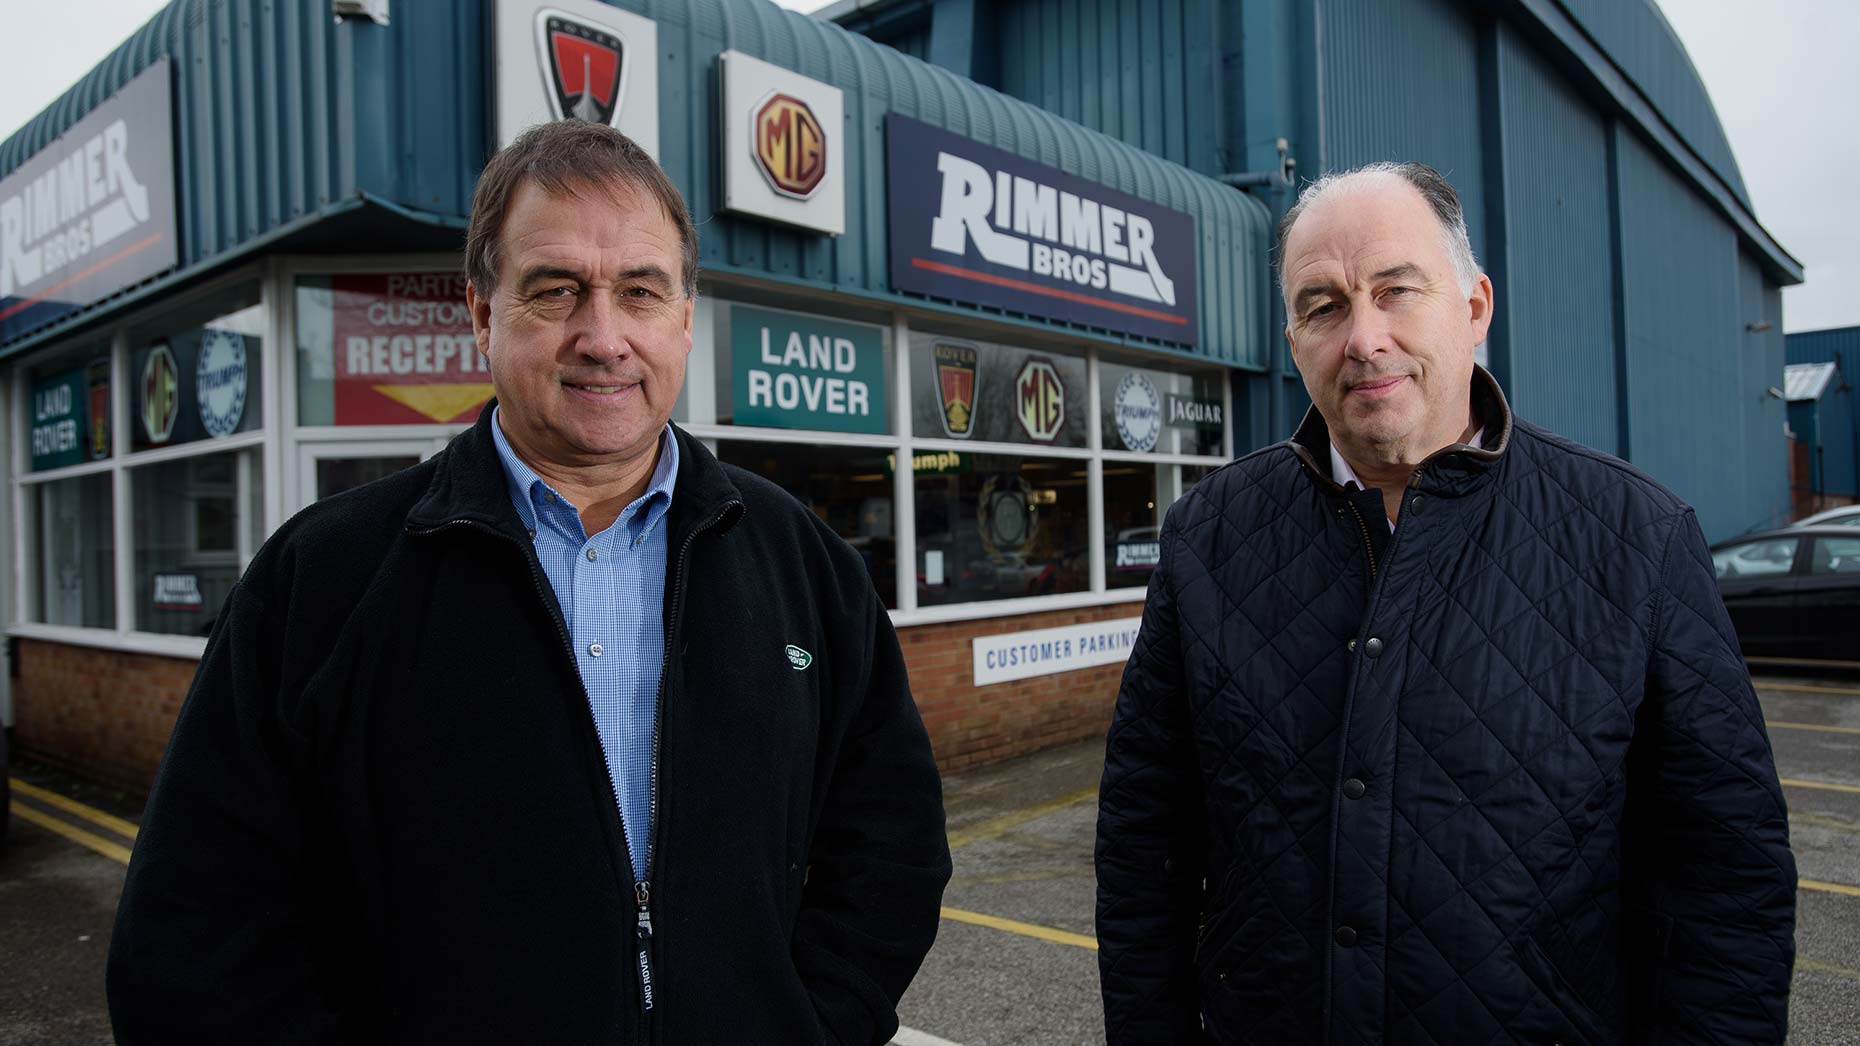 Rimmer Bros Distributing Britain To The World